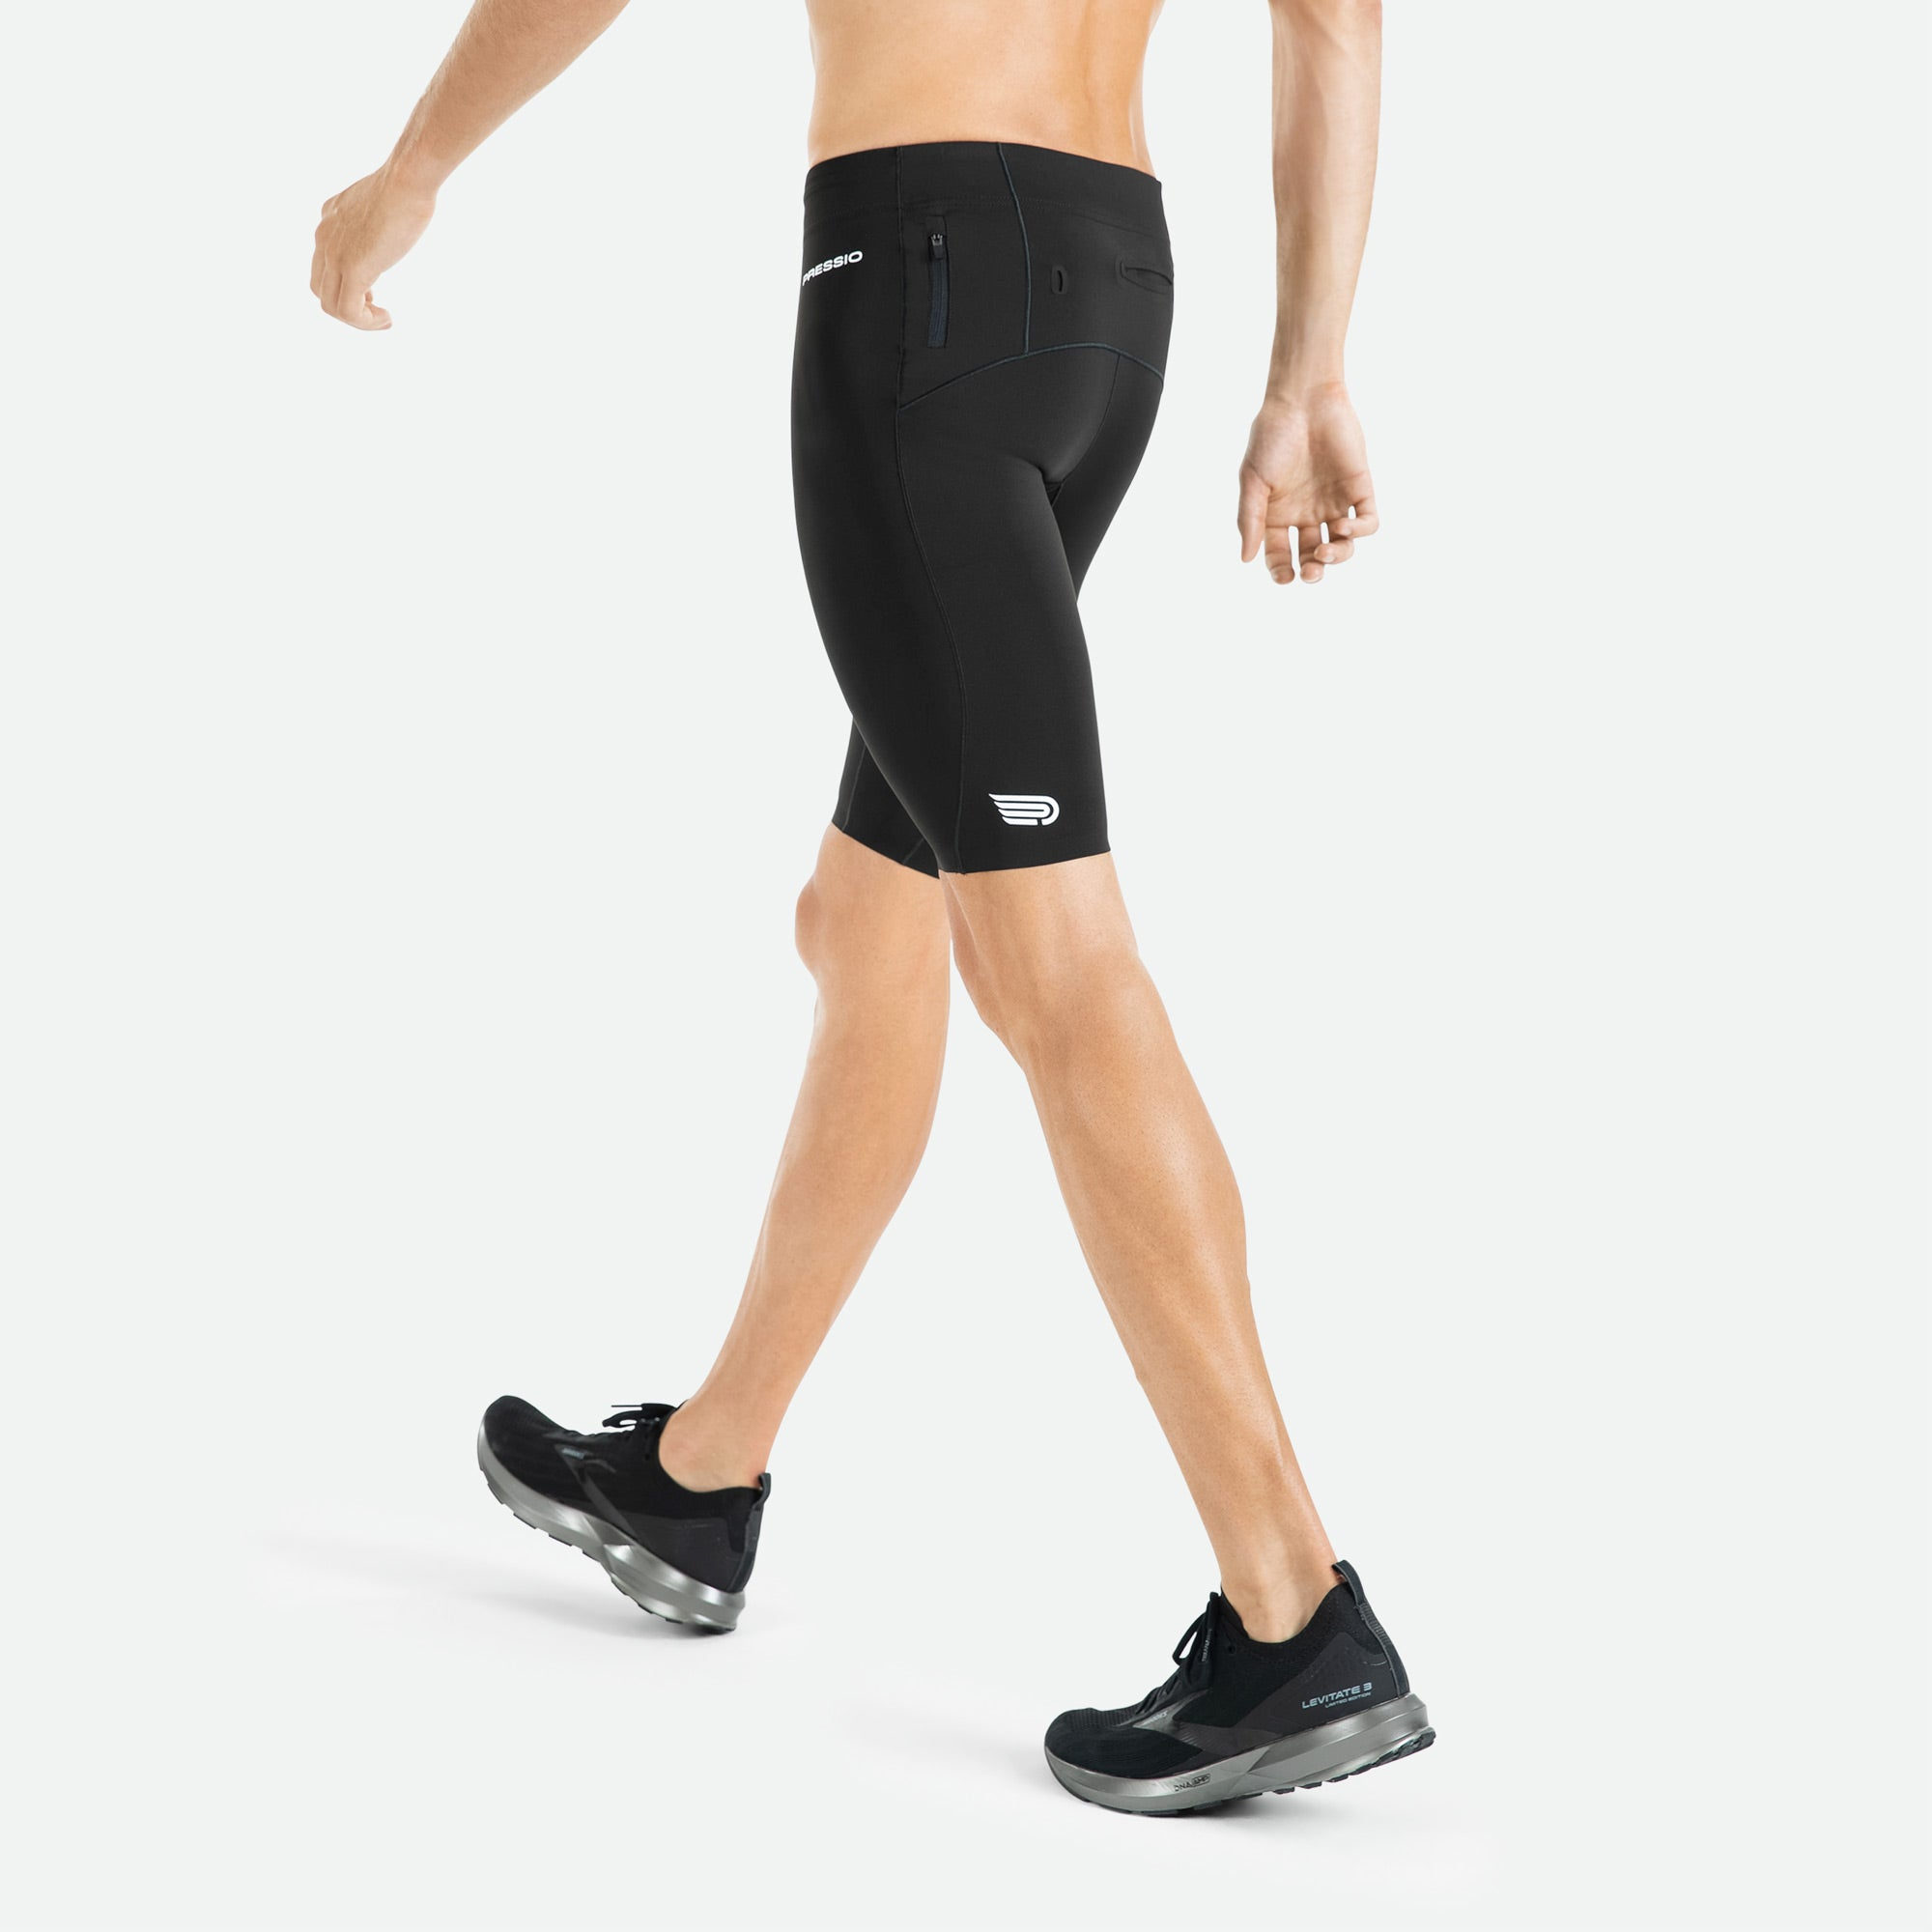 Men's Pressio Run Compression Short offers high filament nylon yarns for comfort, moisture management, and durability.